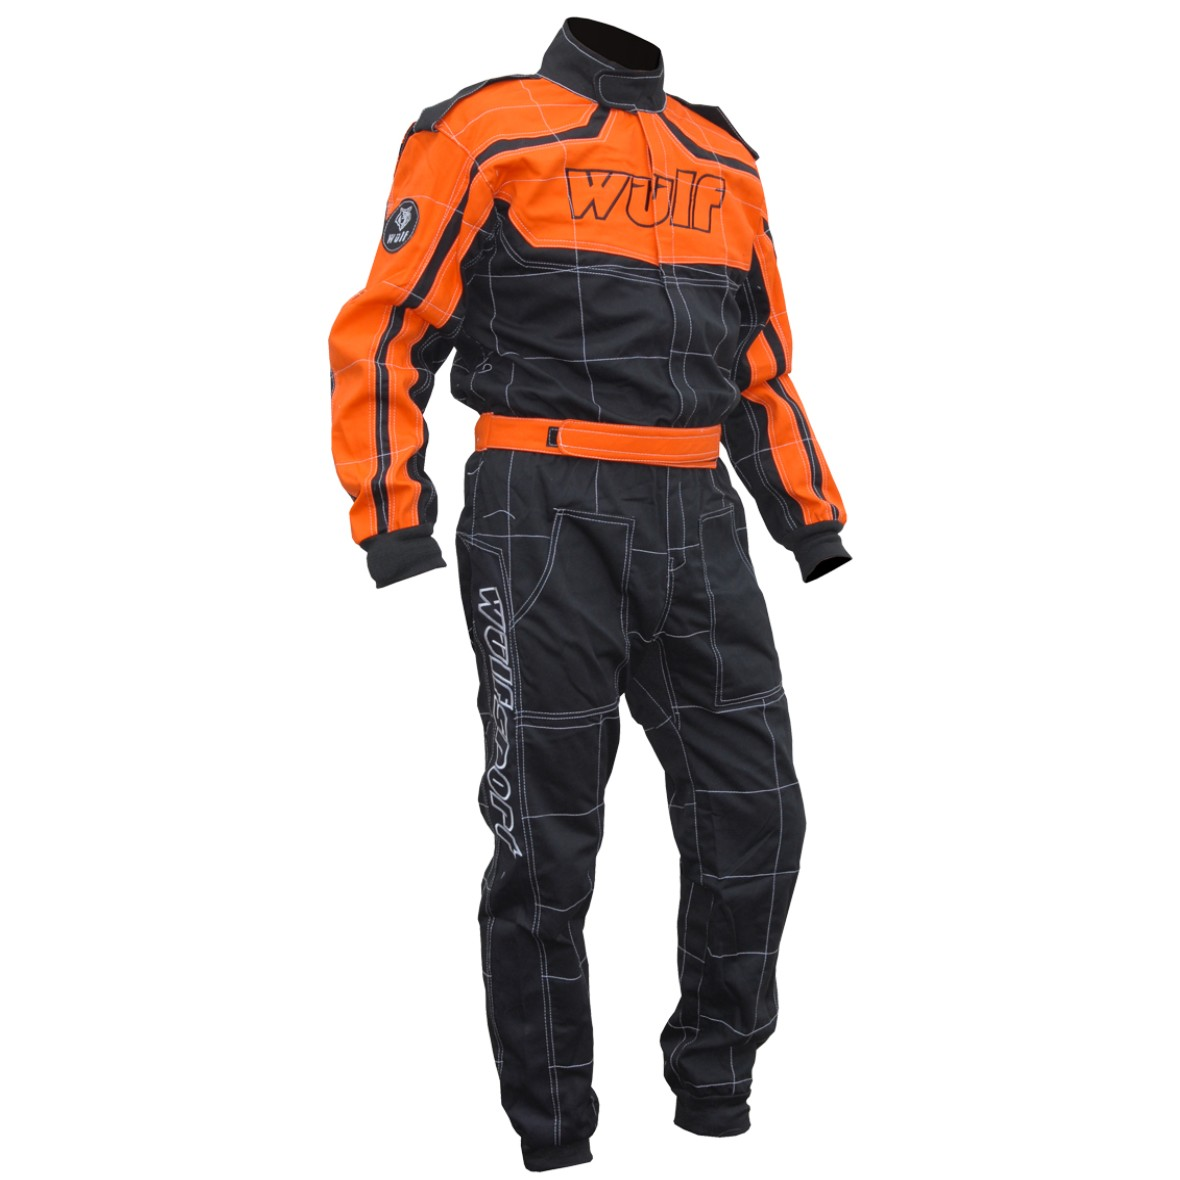 combinaison spécial auto sport rally karting auto cross orange